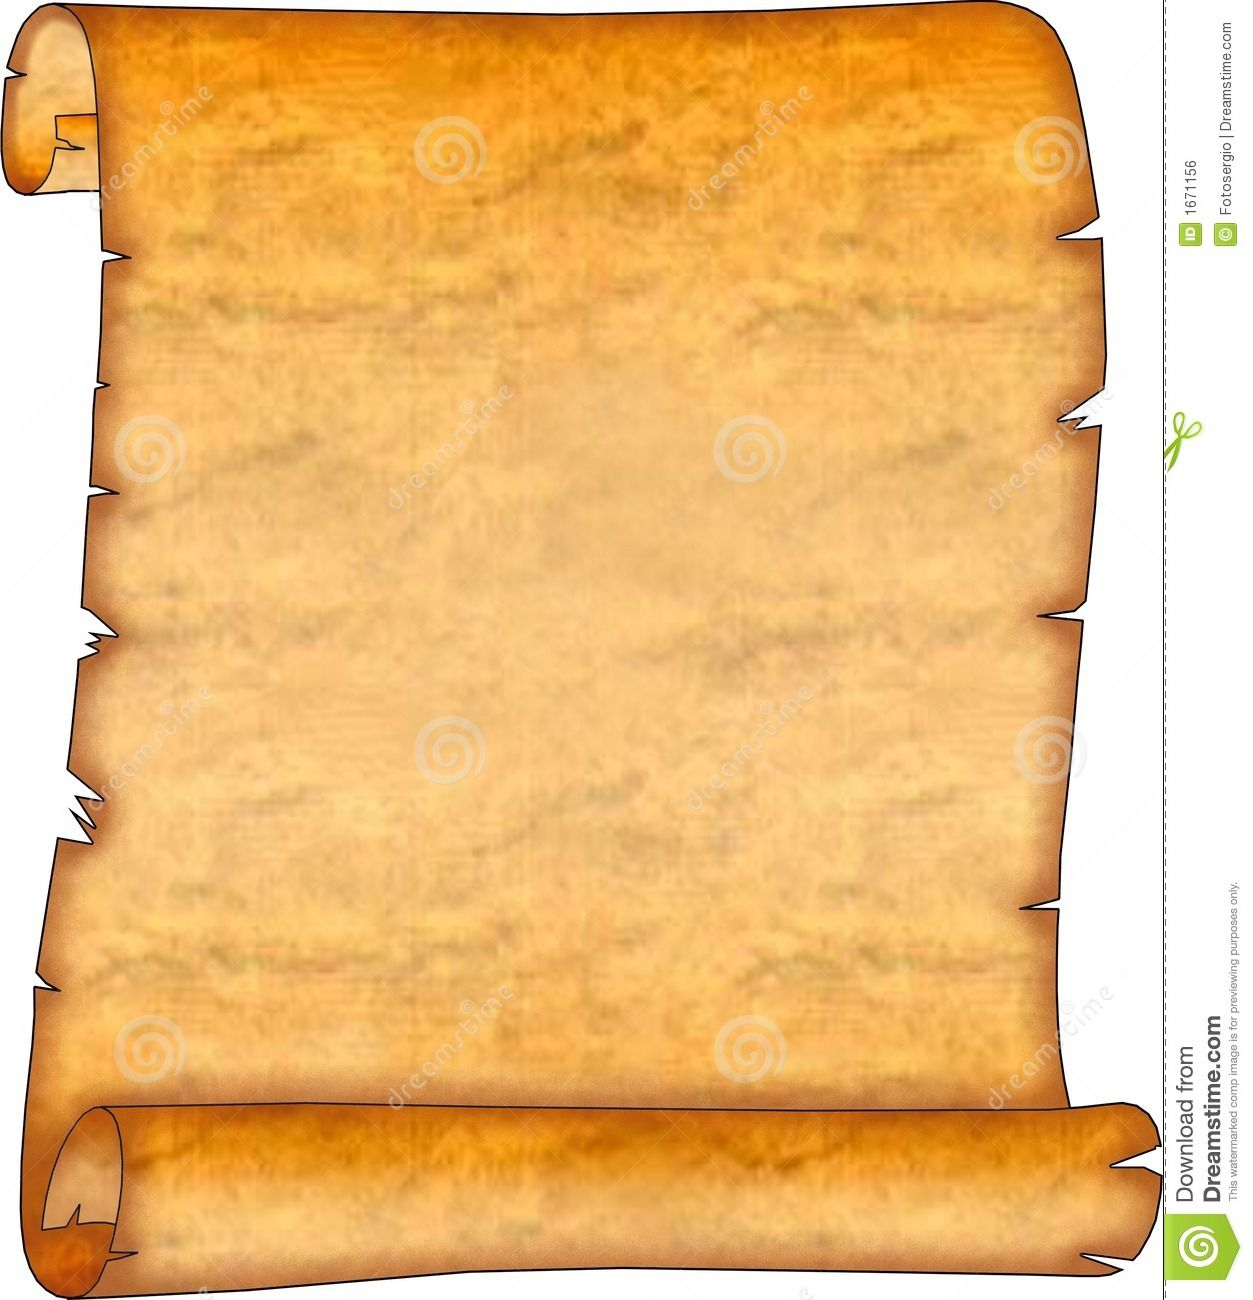 paper scroll template clipart best.html